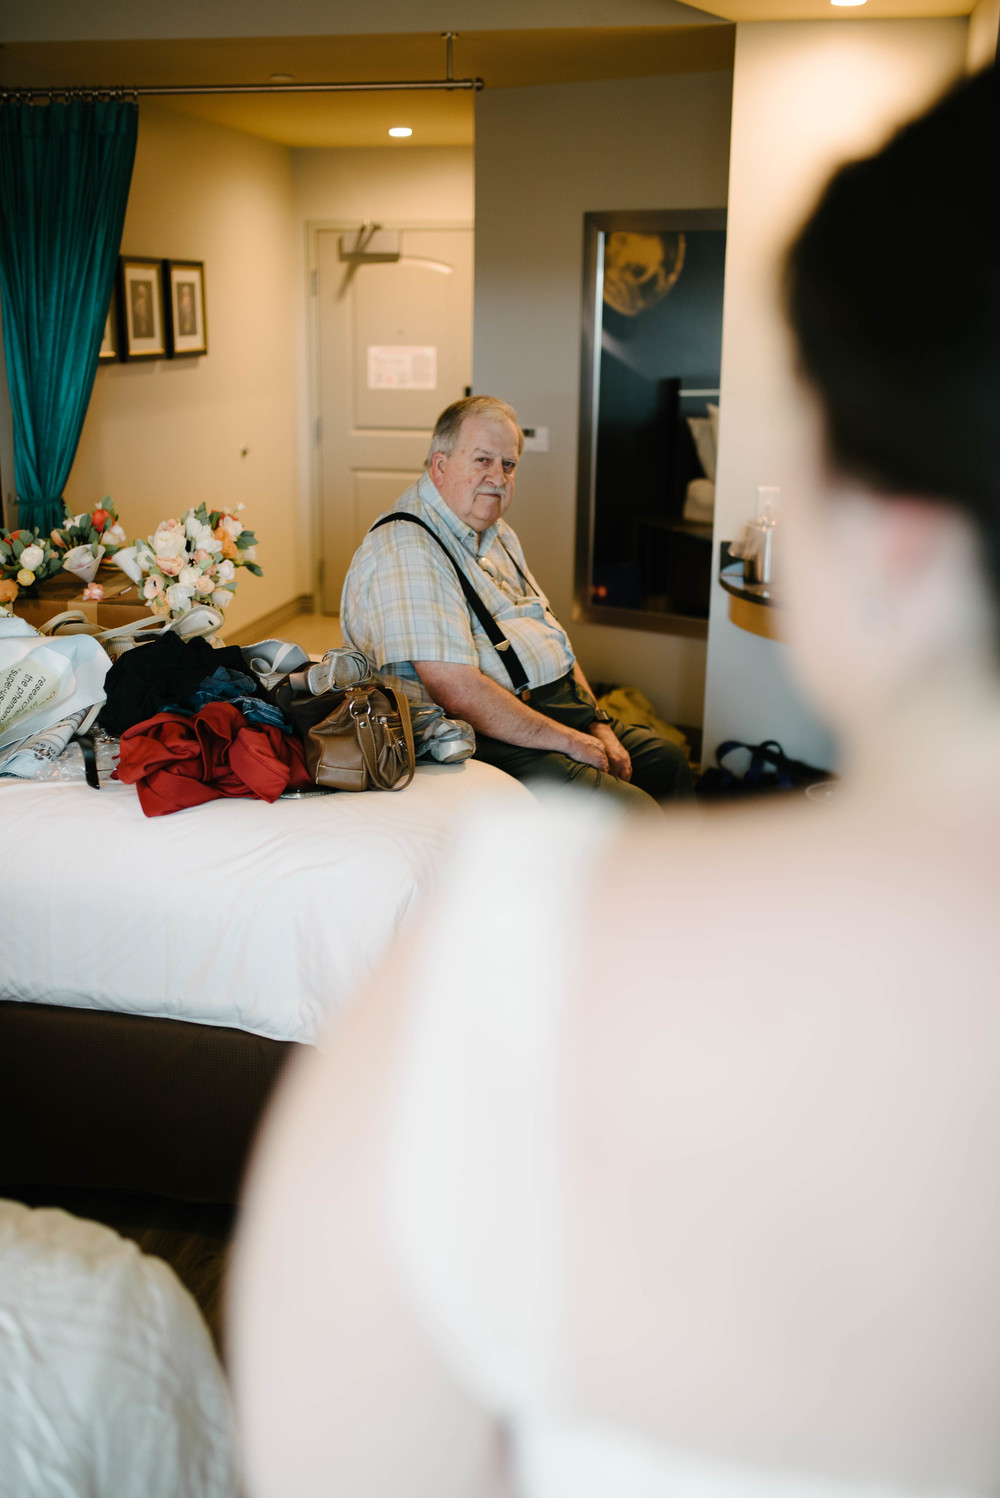 Union-project-pittsburgh-wedding-8.jpg